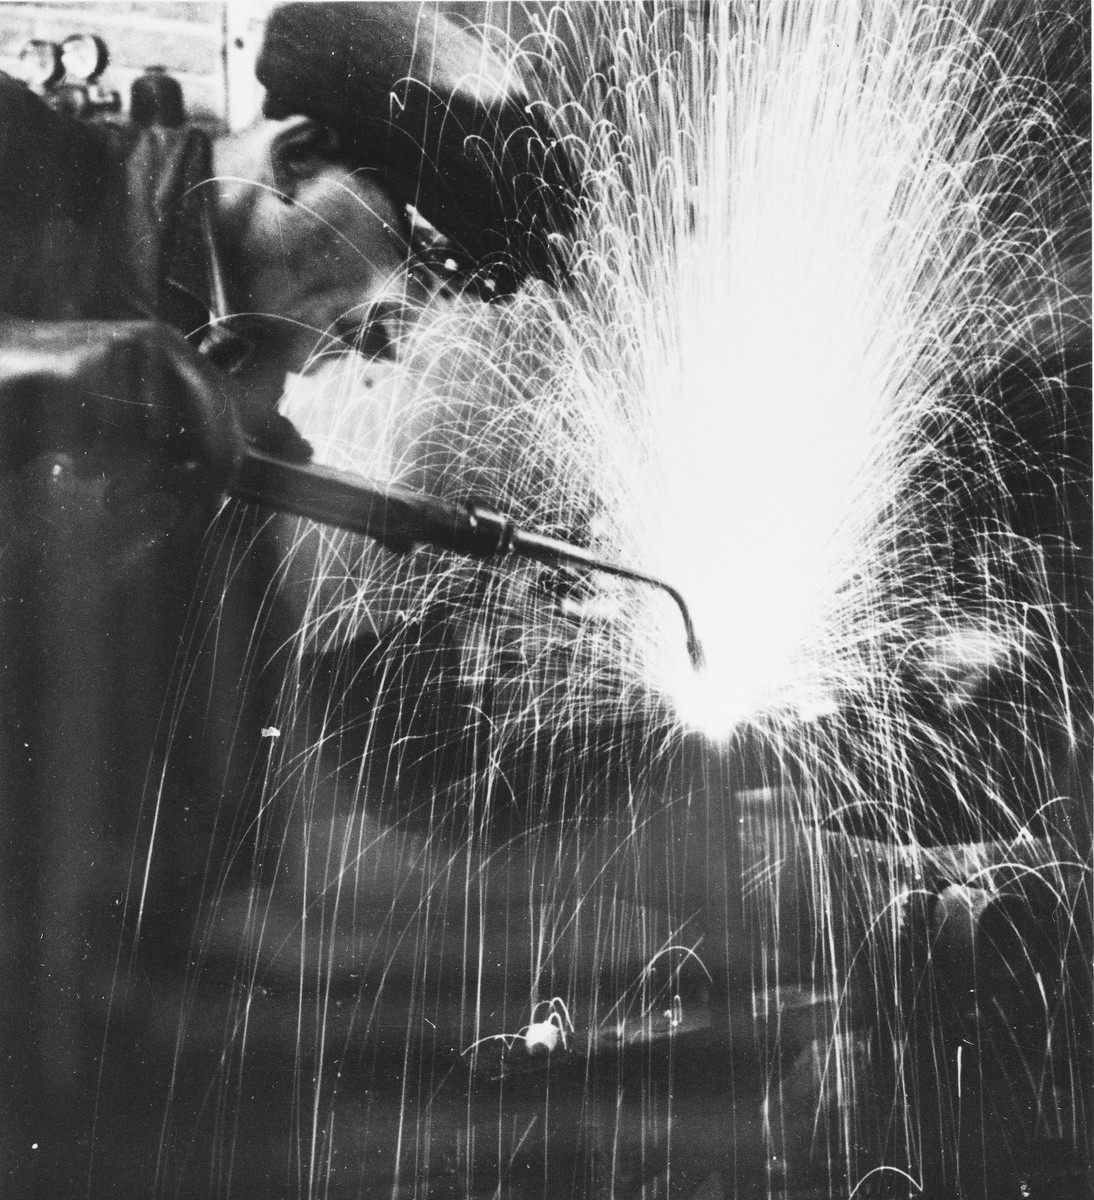 A prisoner welds metal at a Slovak labor camp.